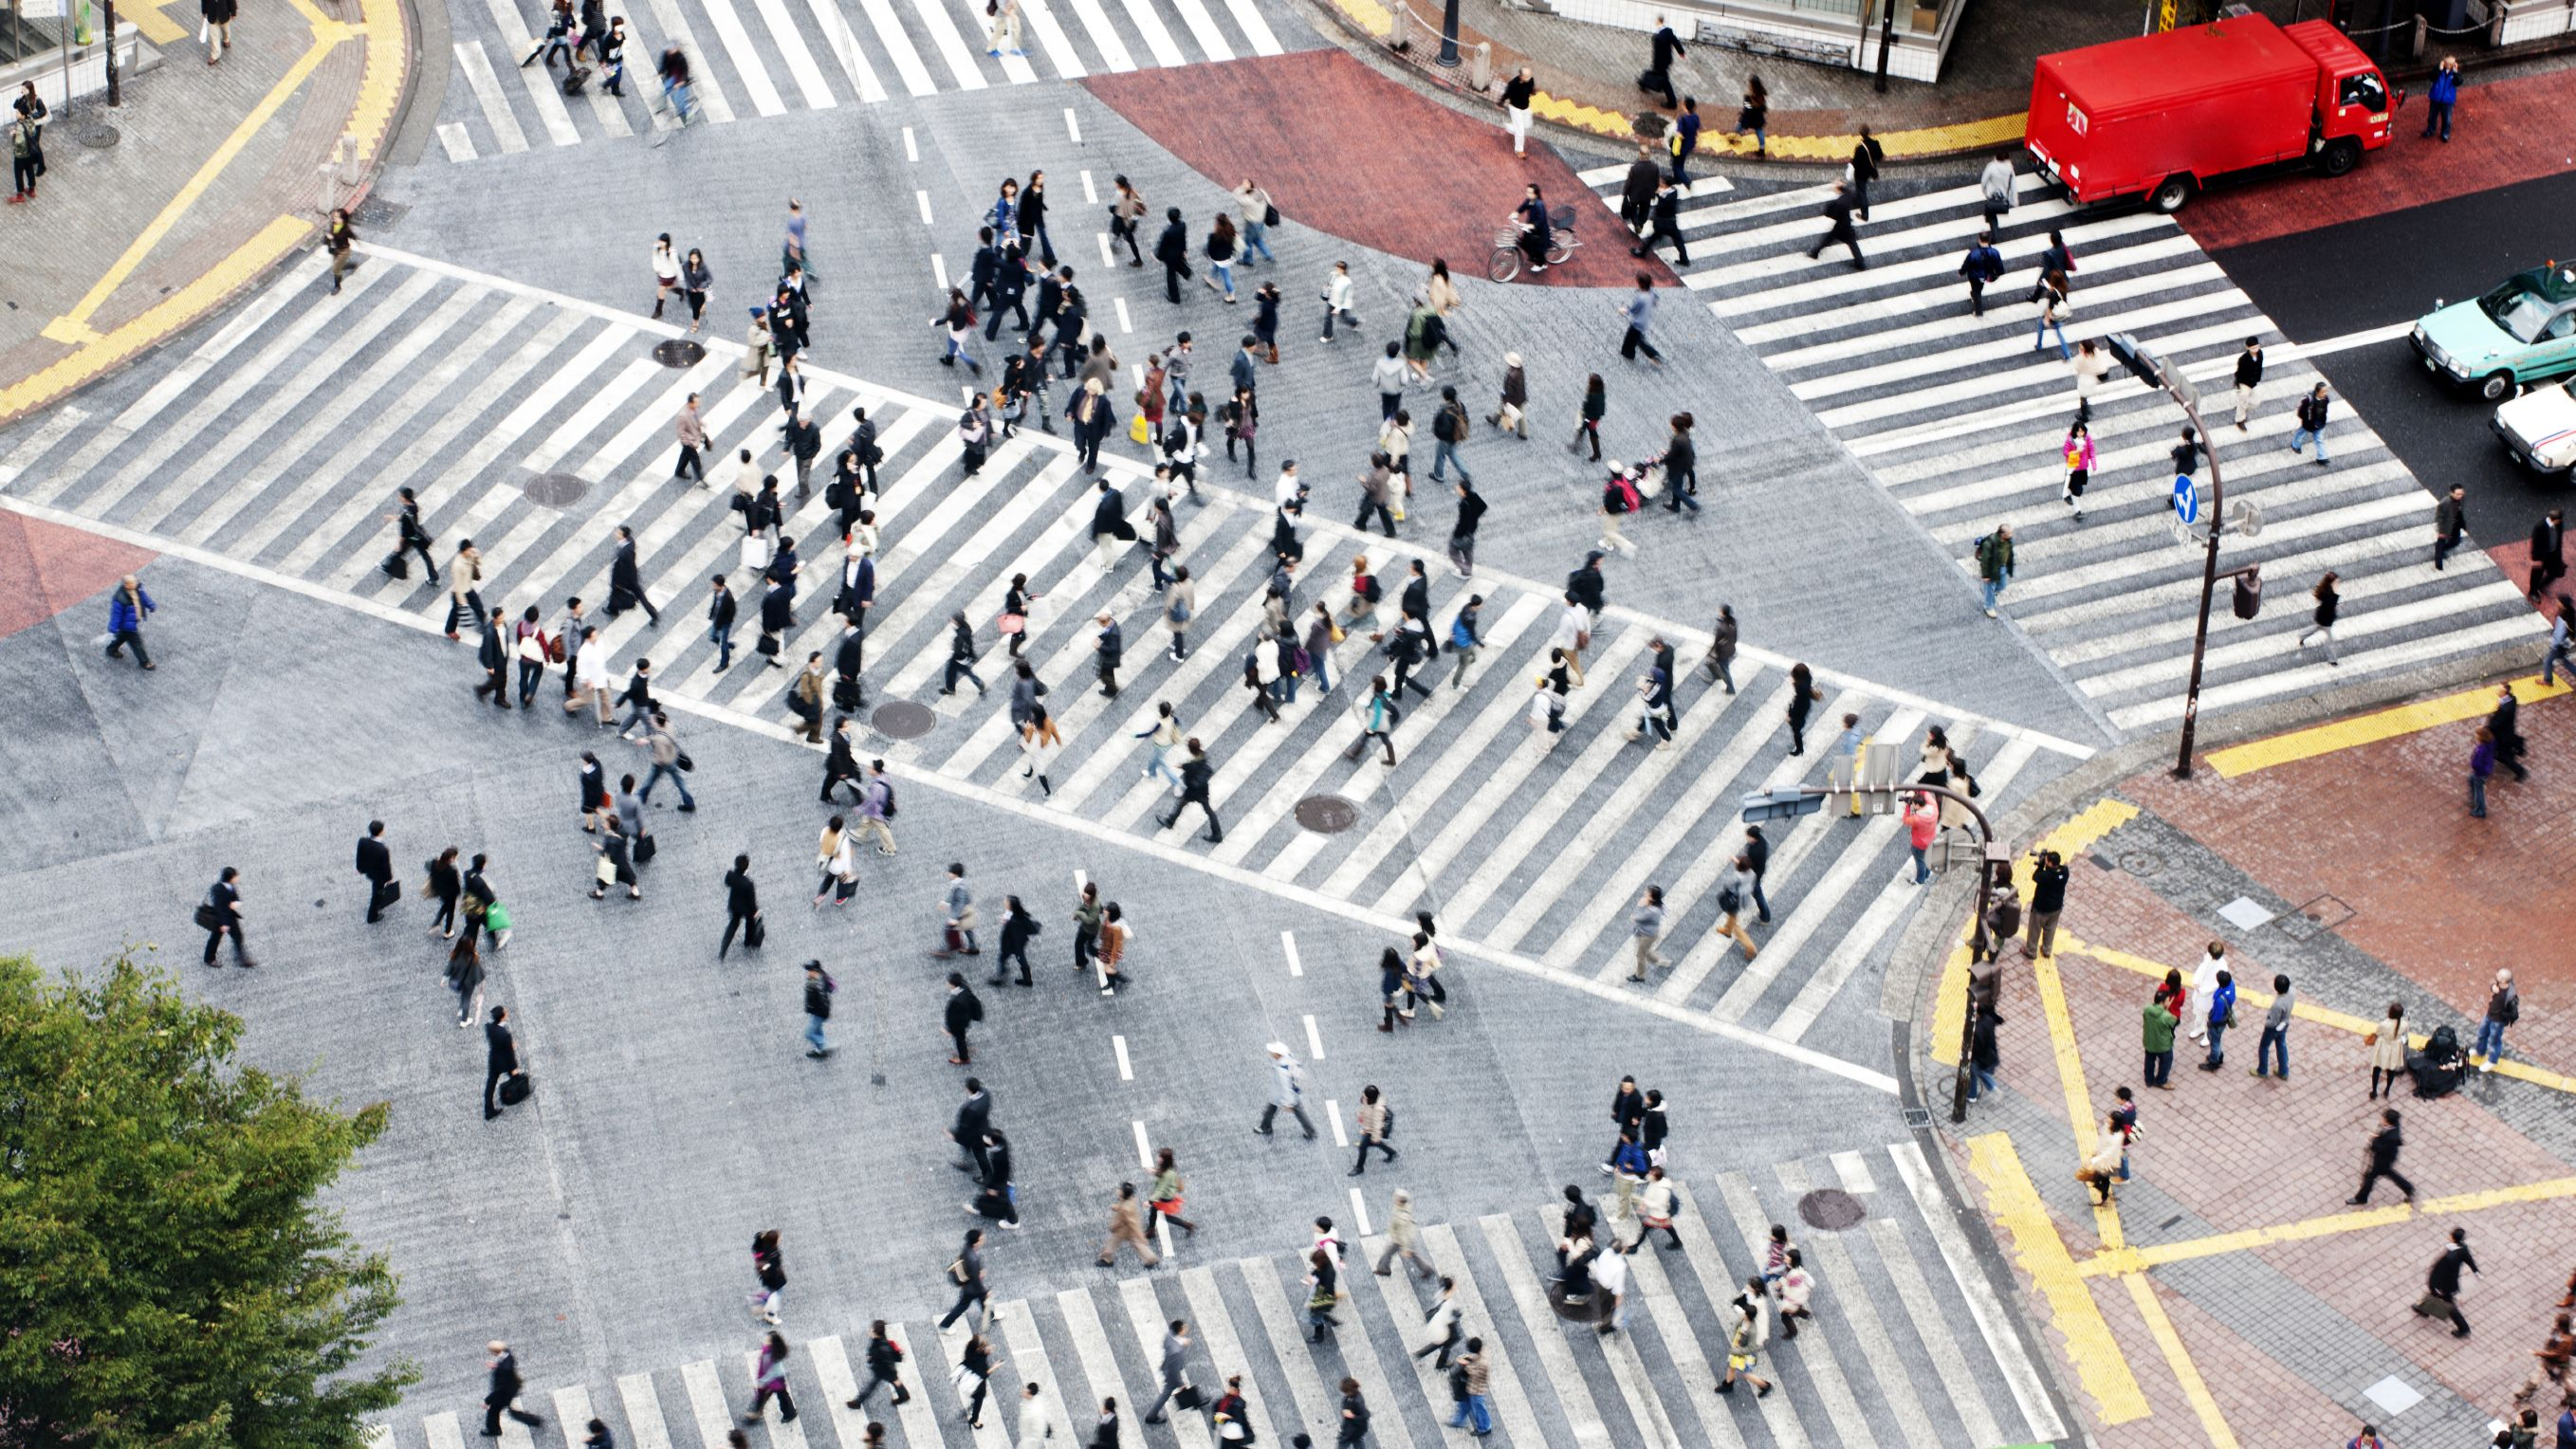 High Level Strucutre - Photo of a pedestrian crossing